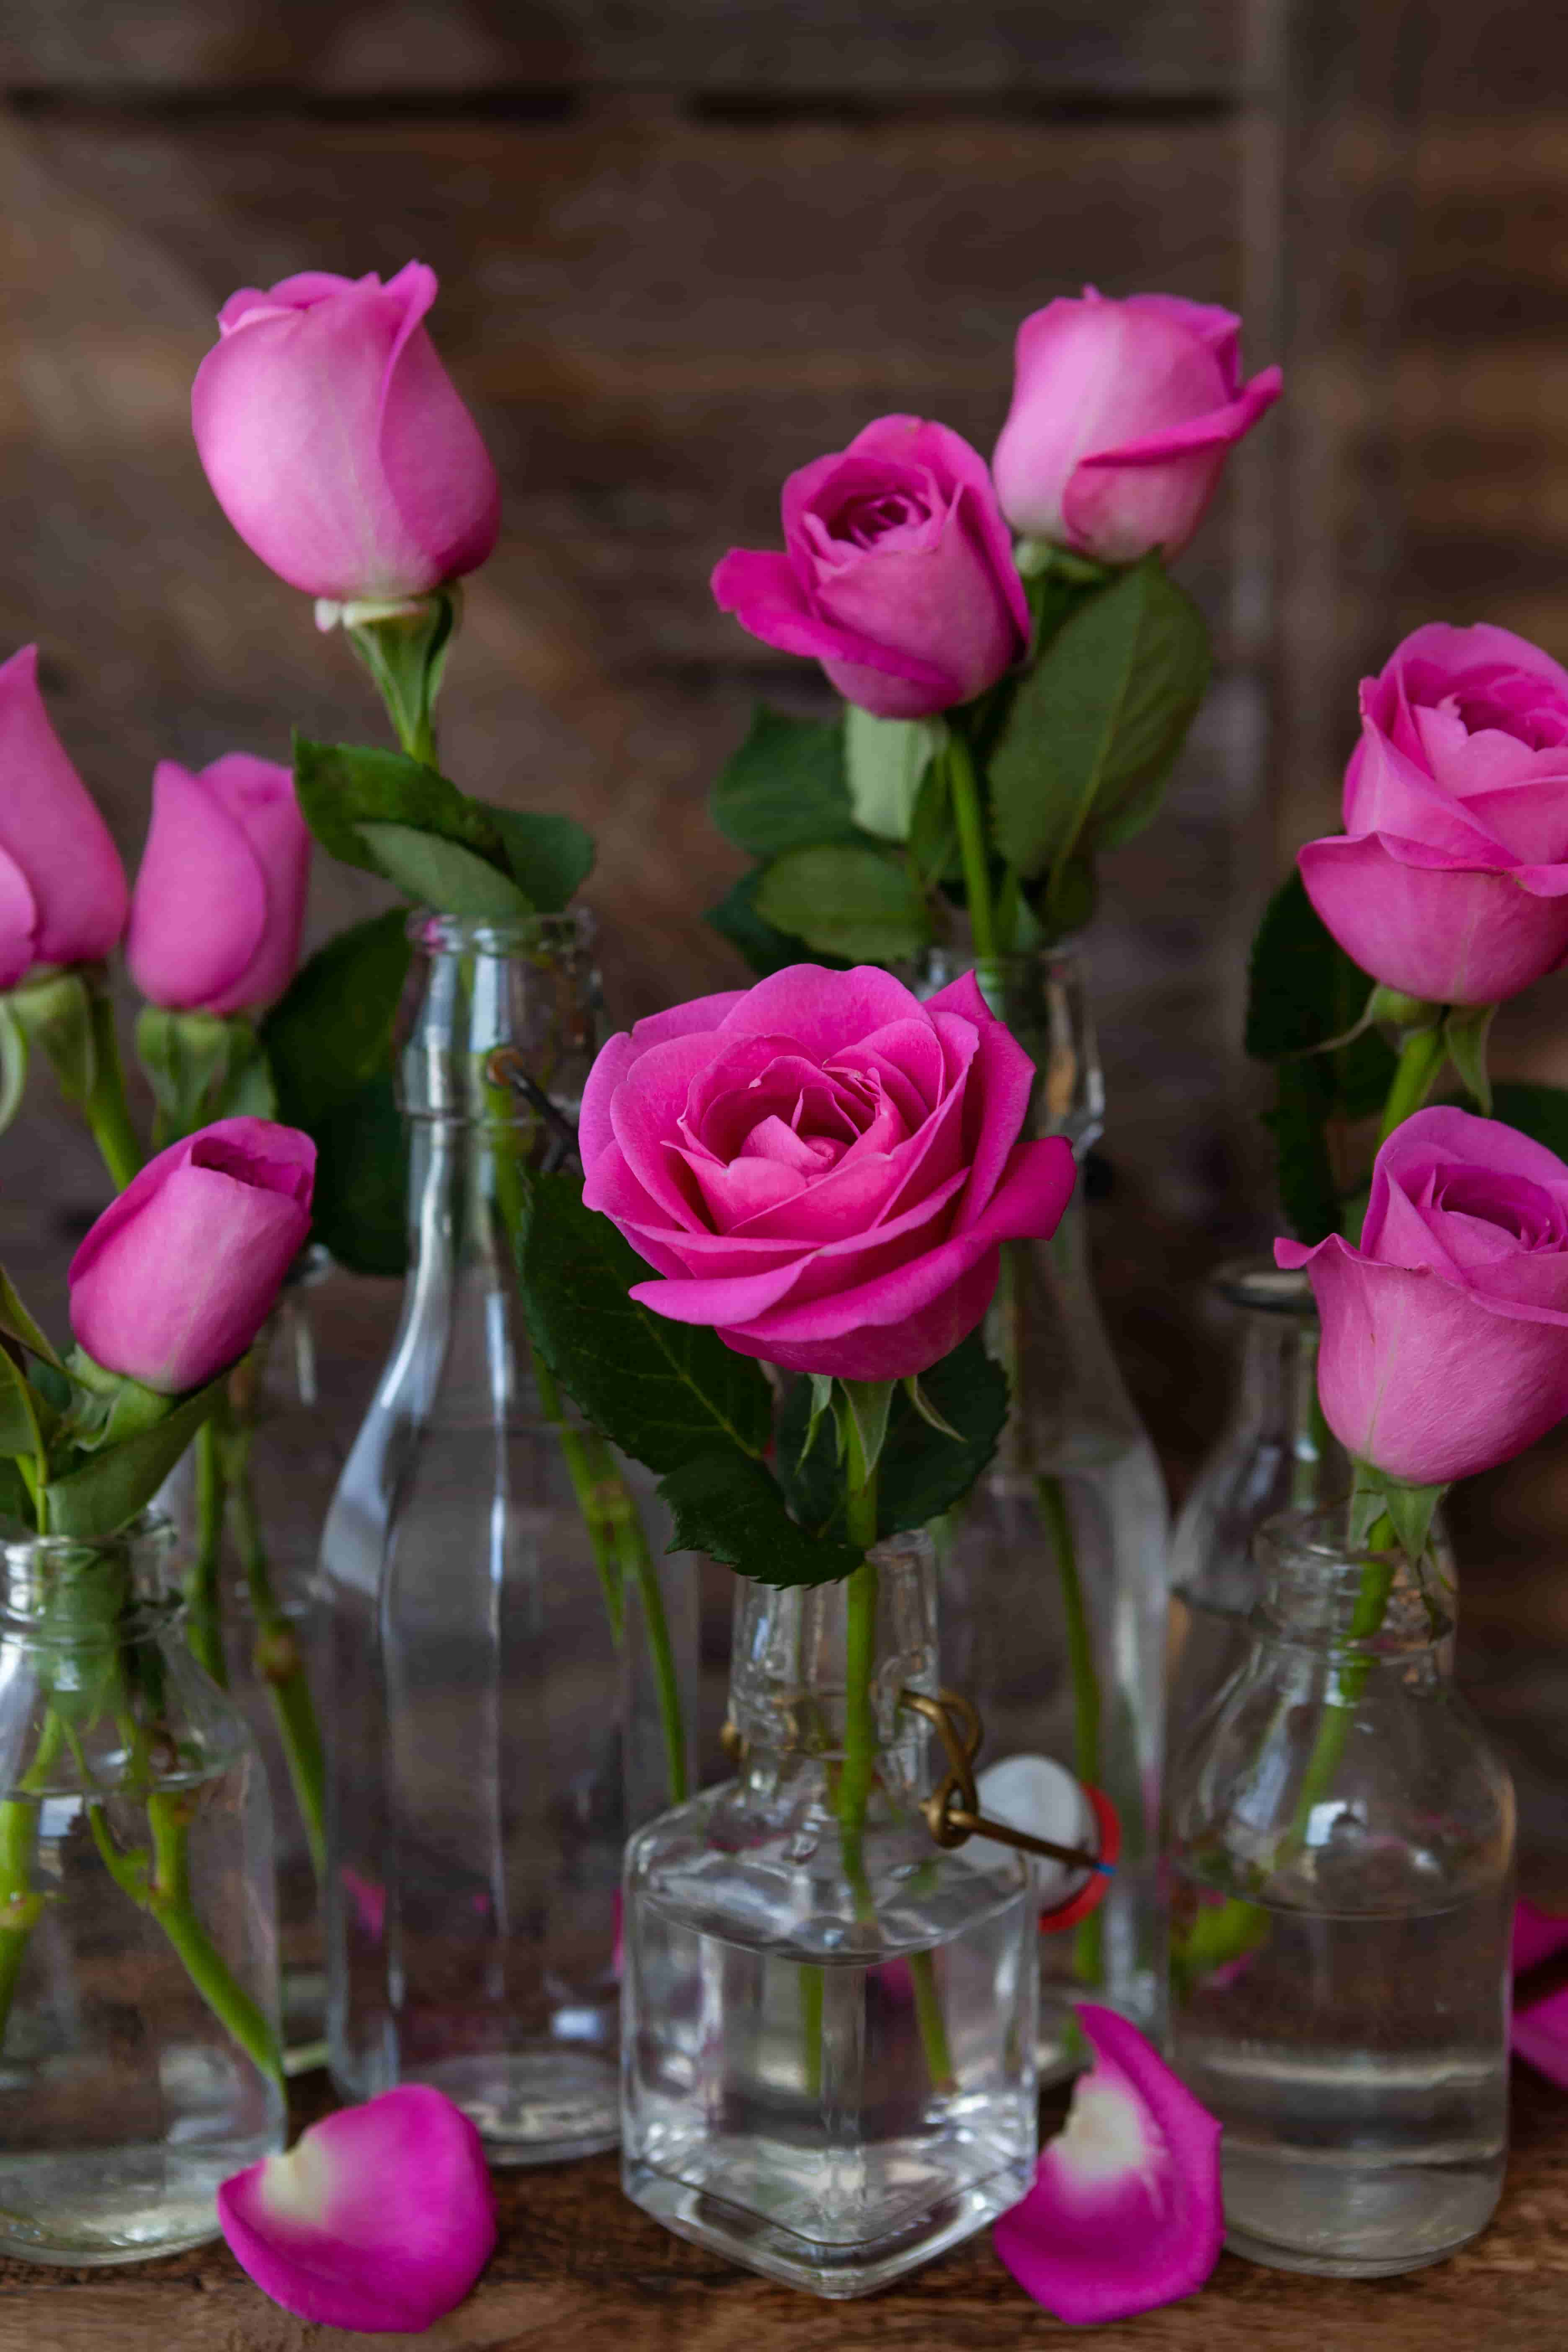 Lush of pink rose images in hd